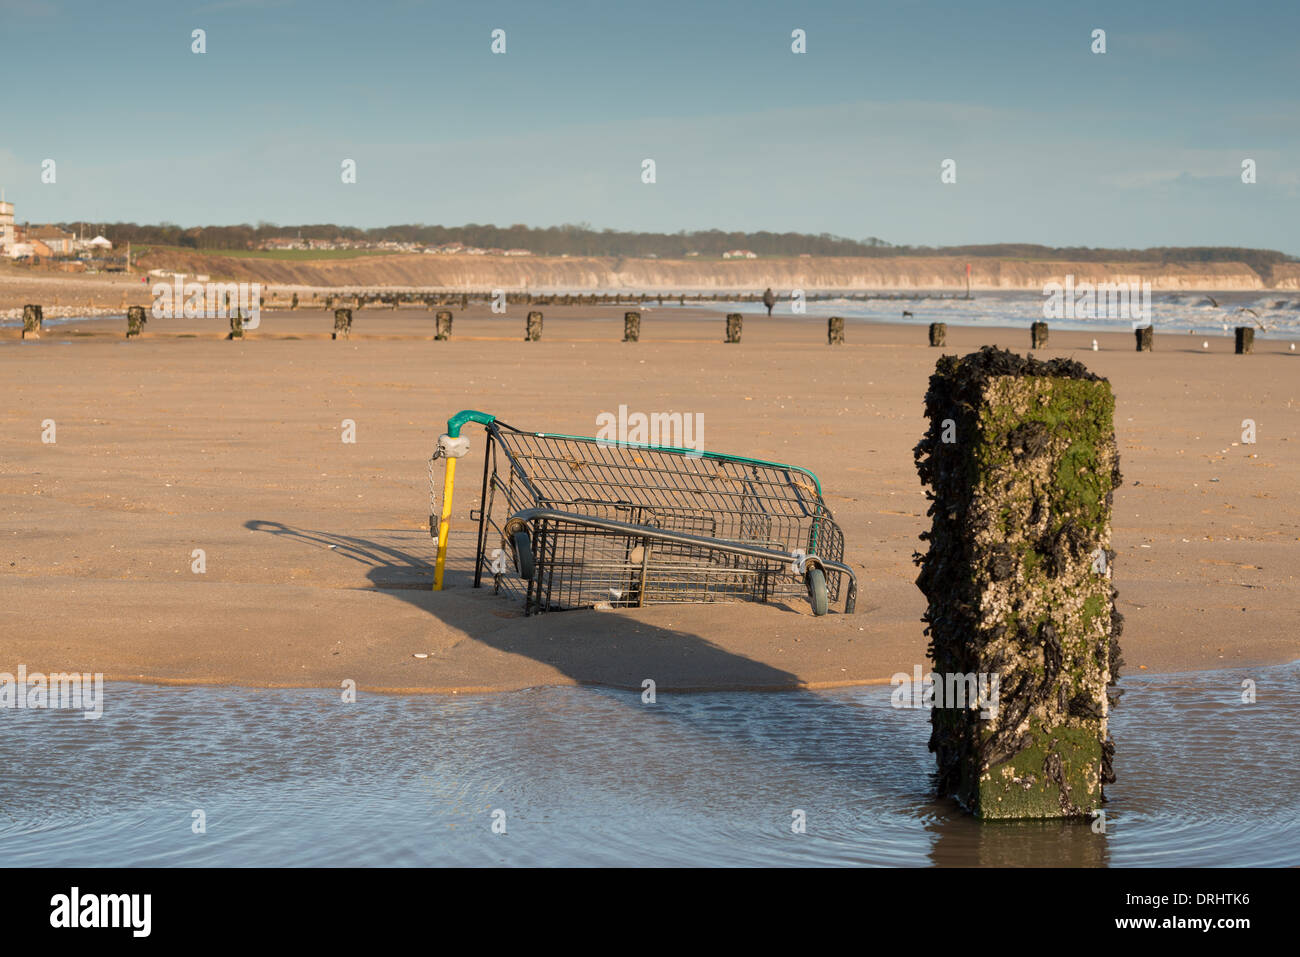 An abandoned supermarket trolley on the beach in Bridlington - Stock Image